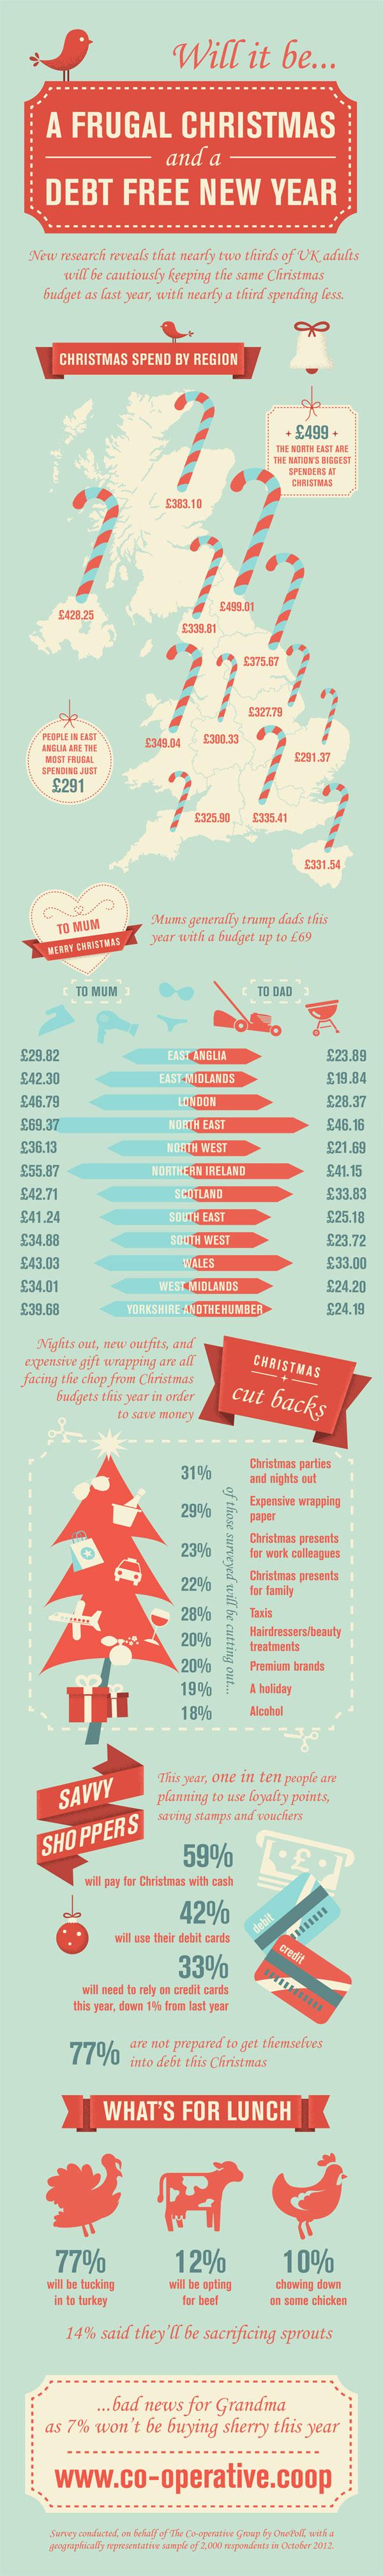 The Cost of Christmas- a third are spending less this year